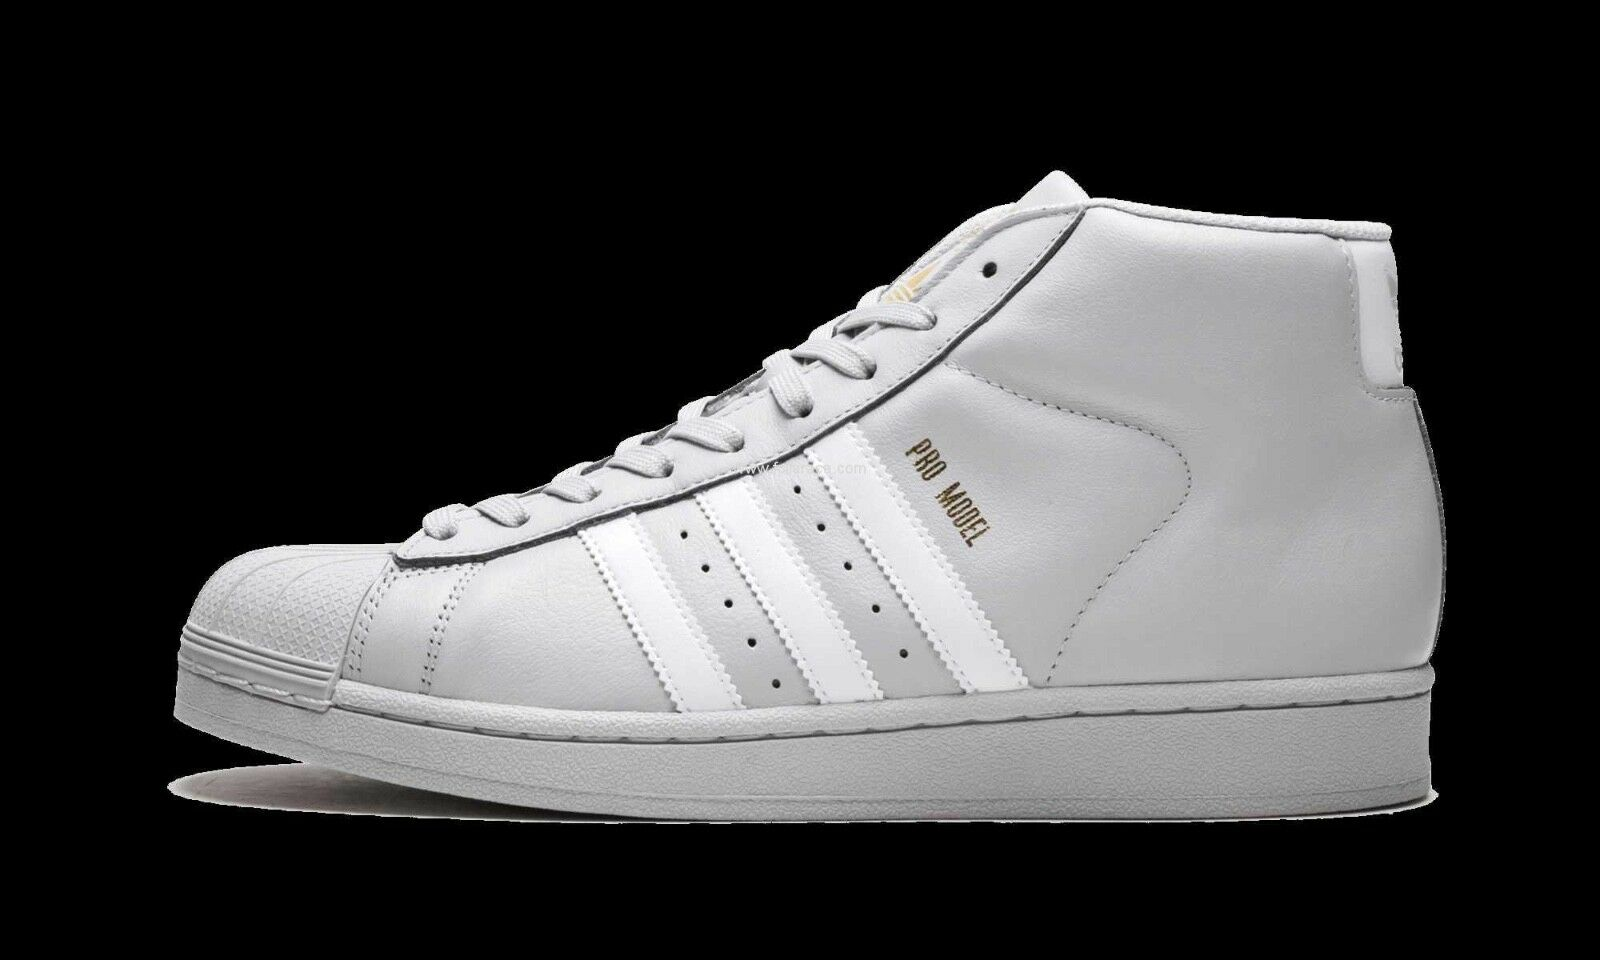 NEW Adidas Originals Pro Model Men's shoes Grey White Leather Shell Toe CG5073